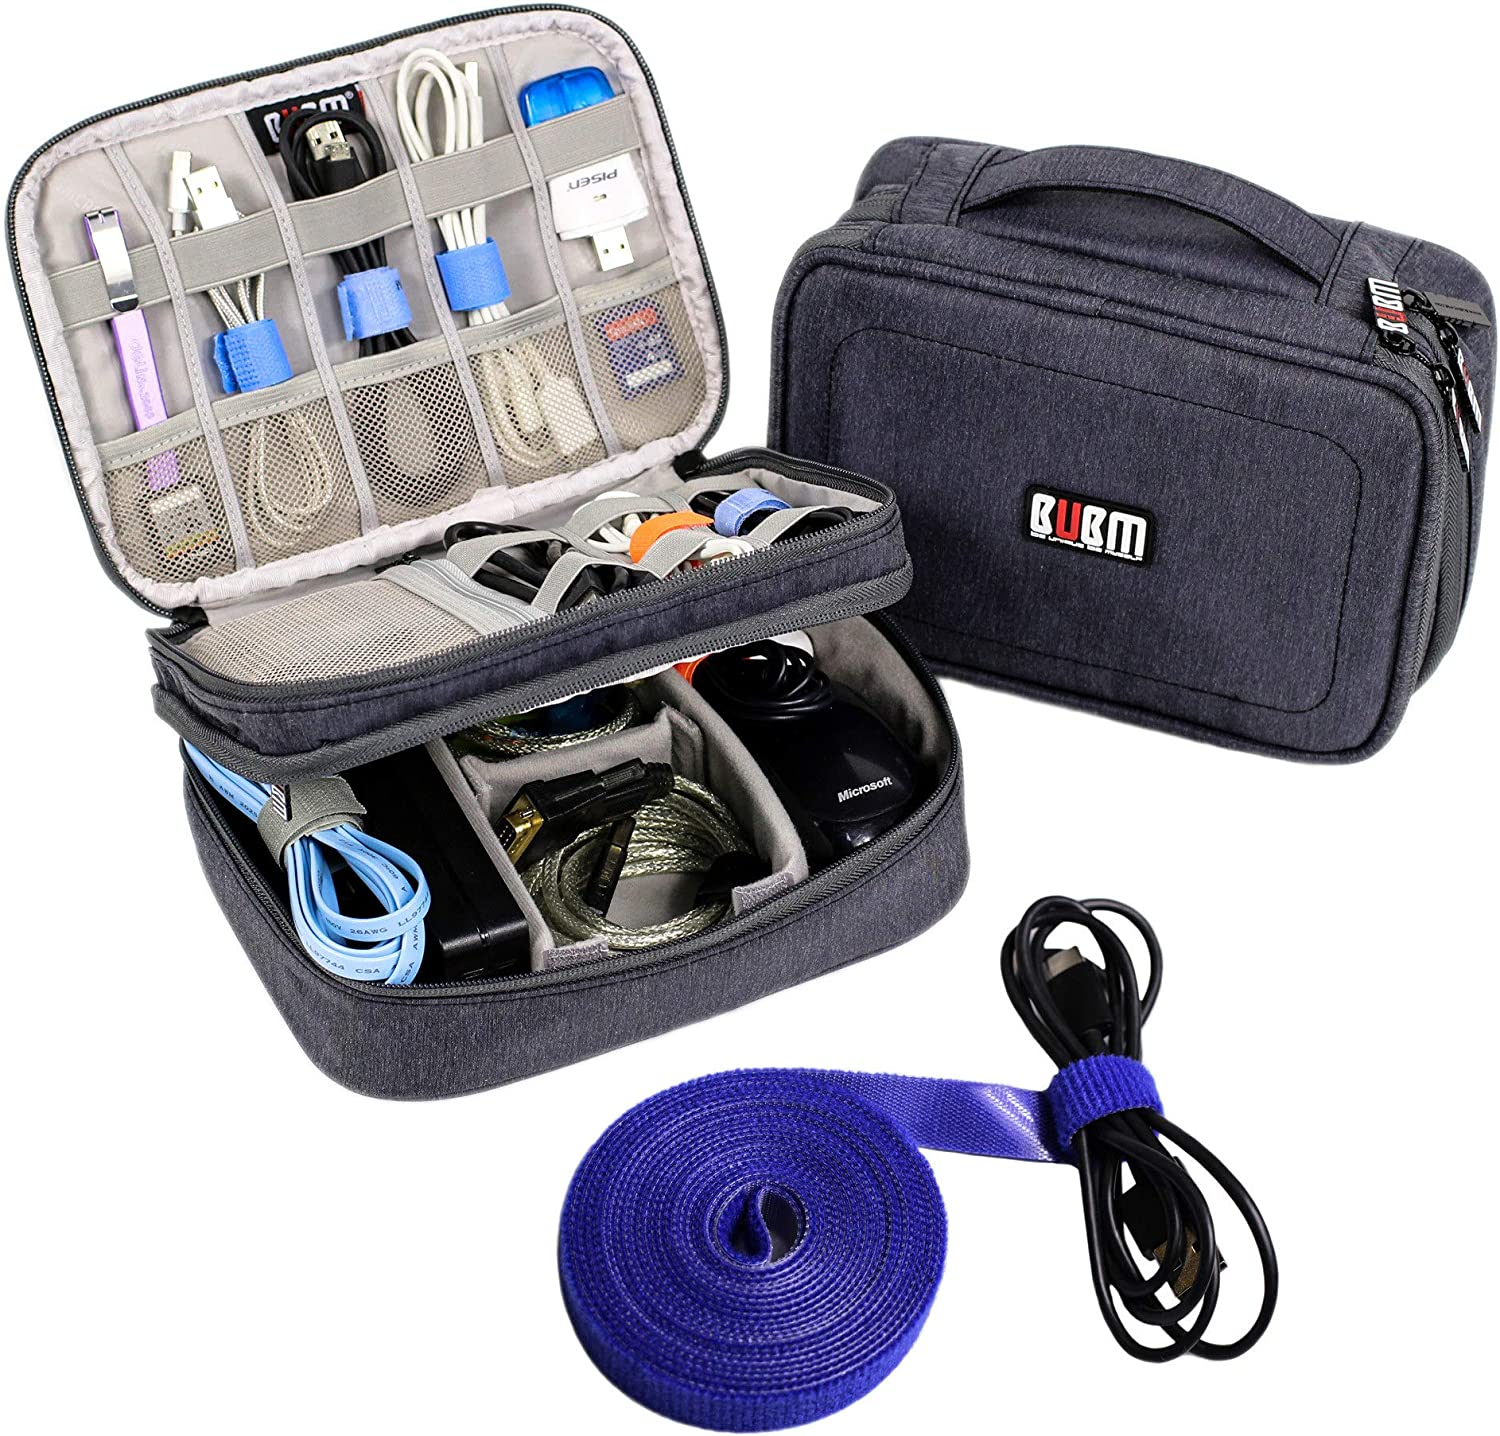 Electronics Organizer Travel Cable Cord Wire Bag Accessories Gadget Gear Storage Cases (Dark Gray)